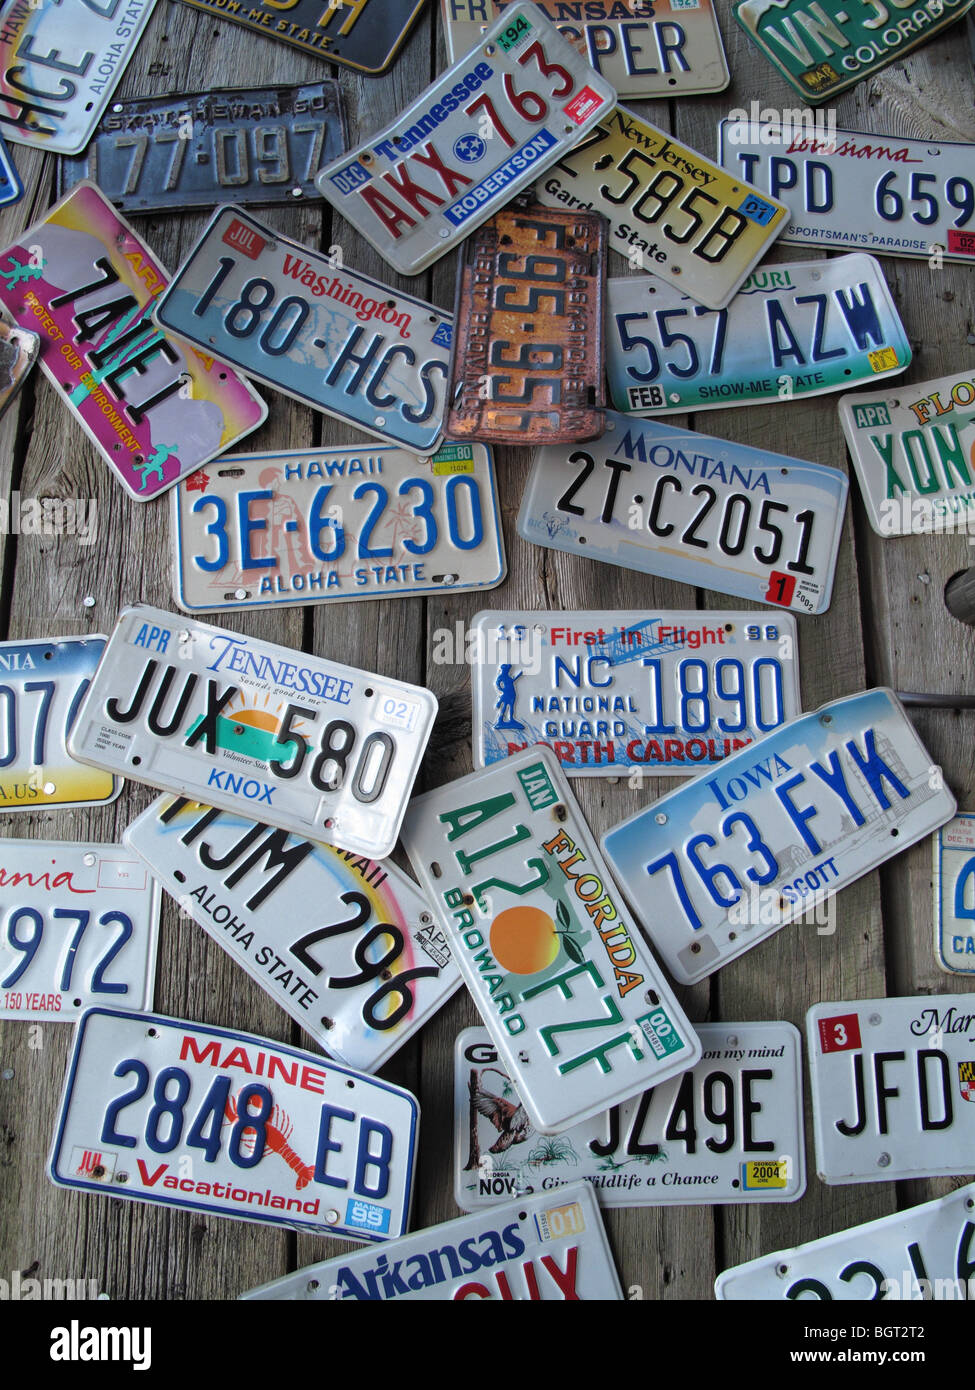 American number plates - Stock Image